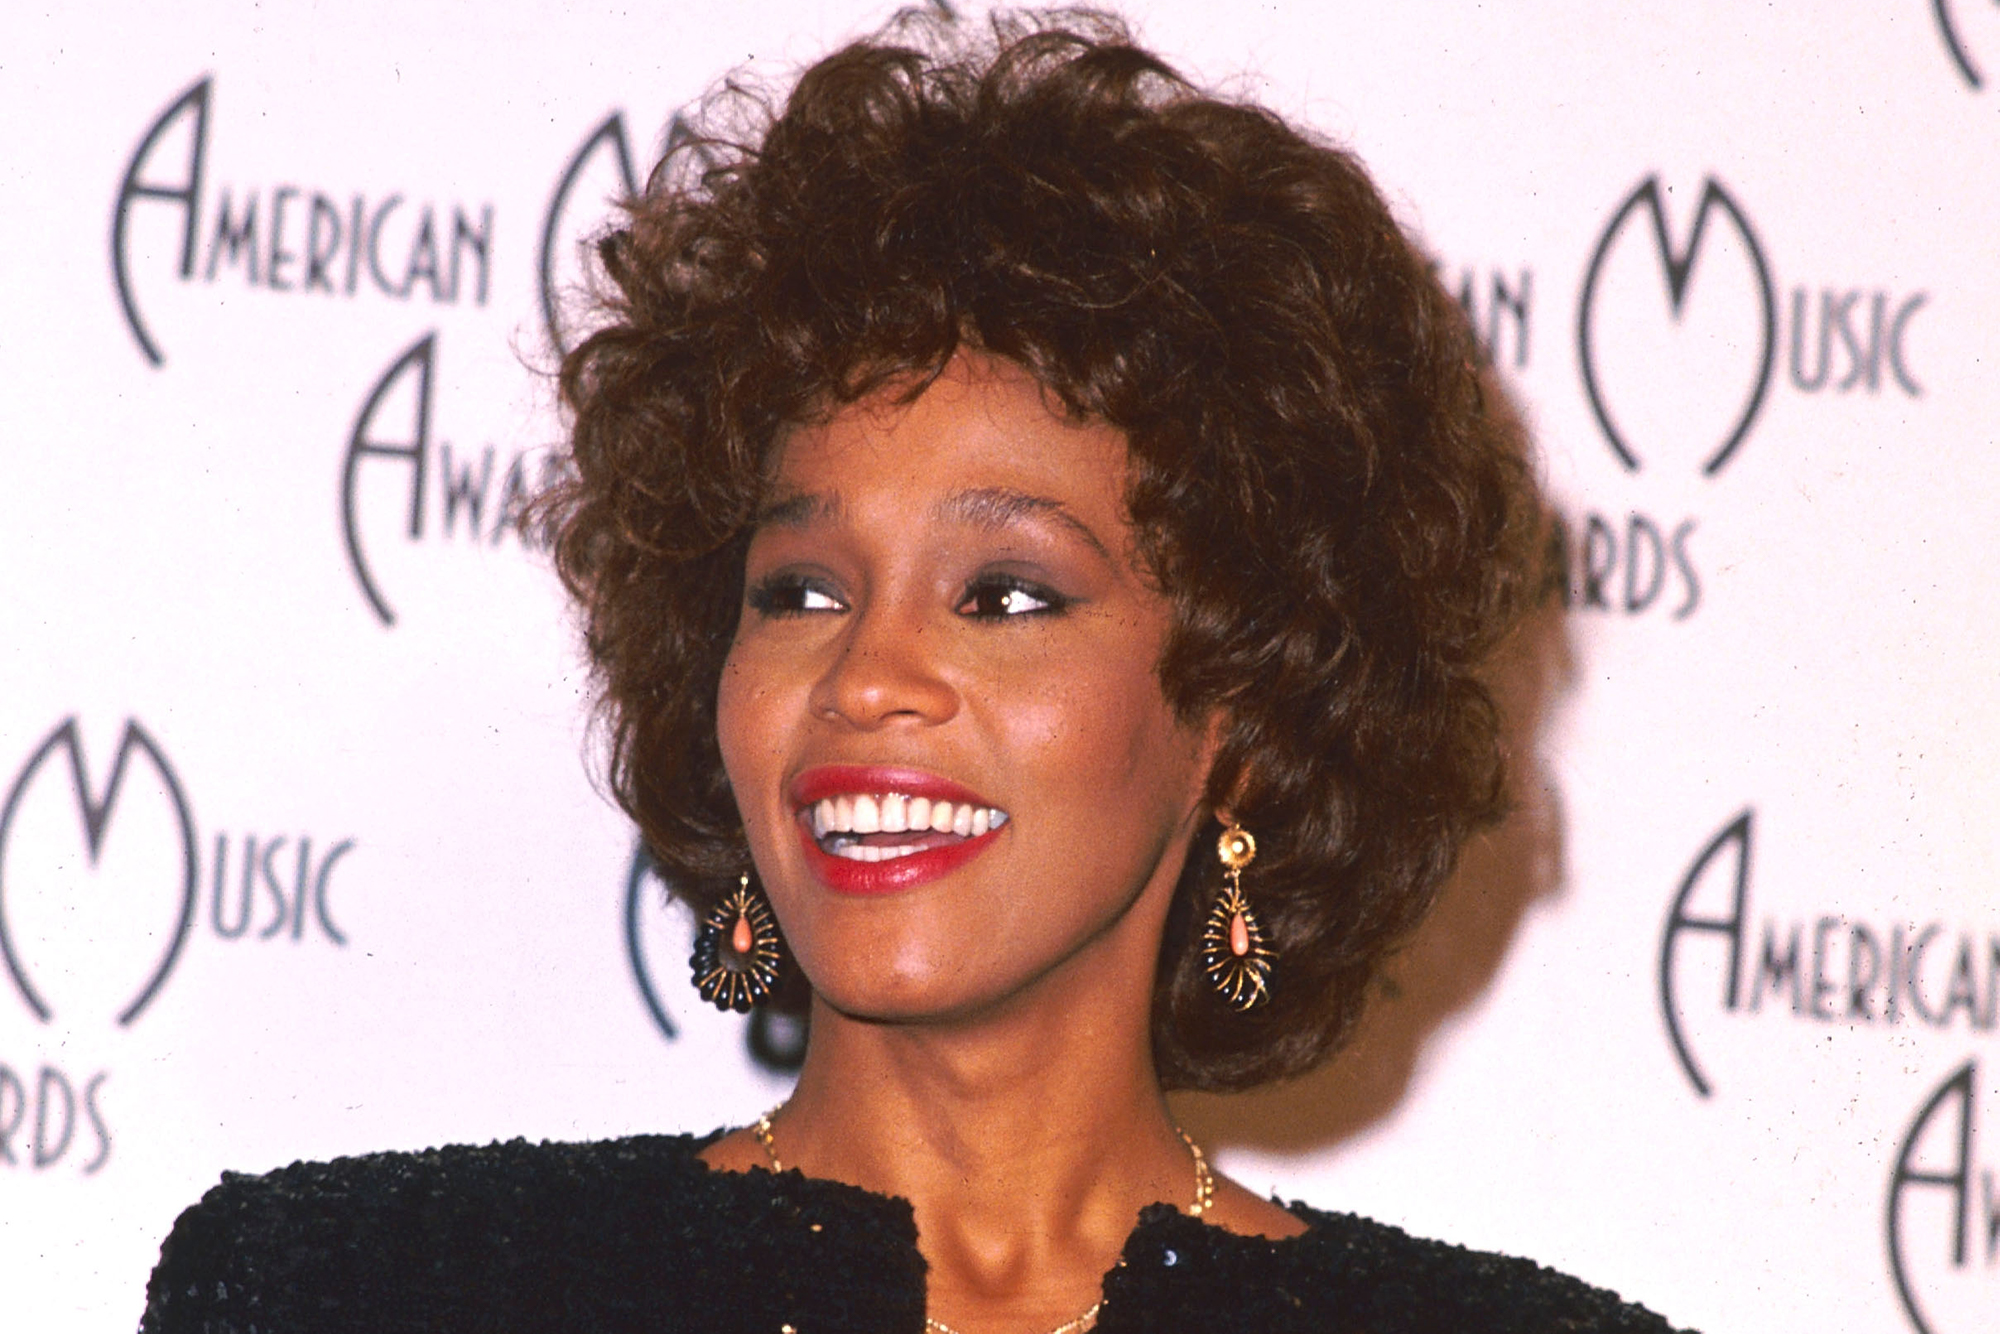 Whitney Houston has a new song out: Listen to 'Higher Love'